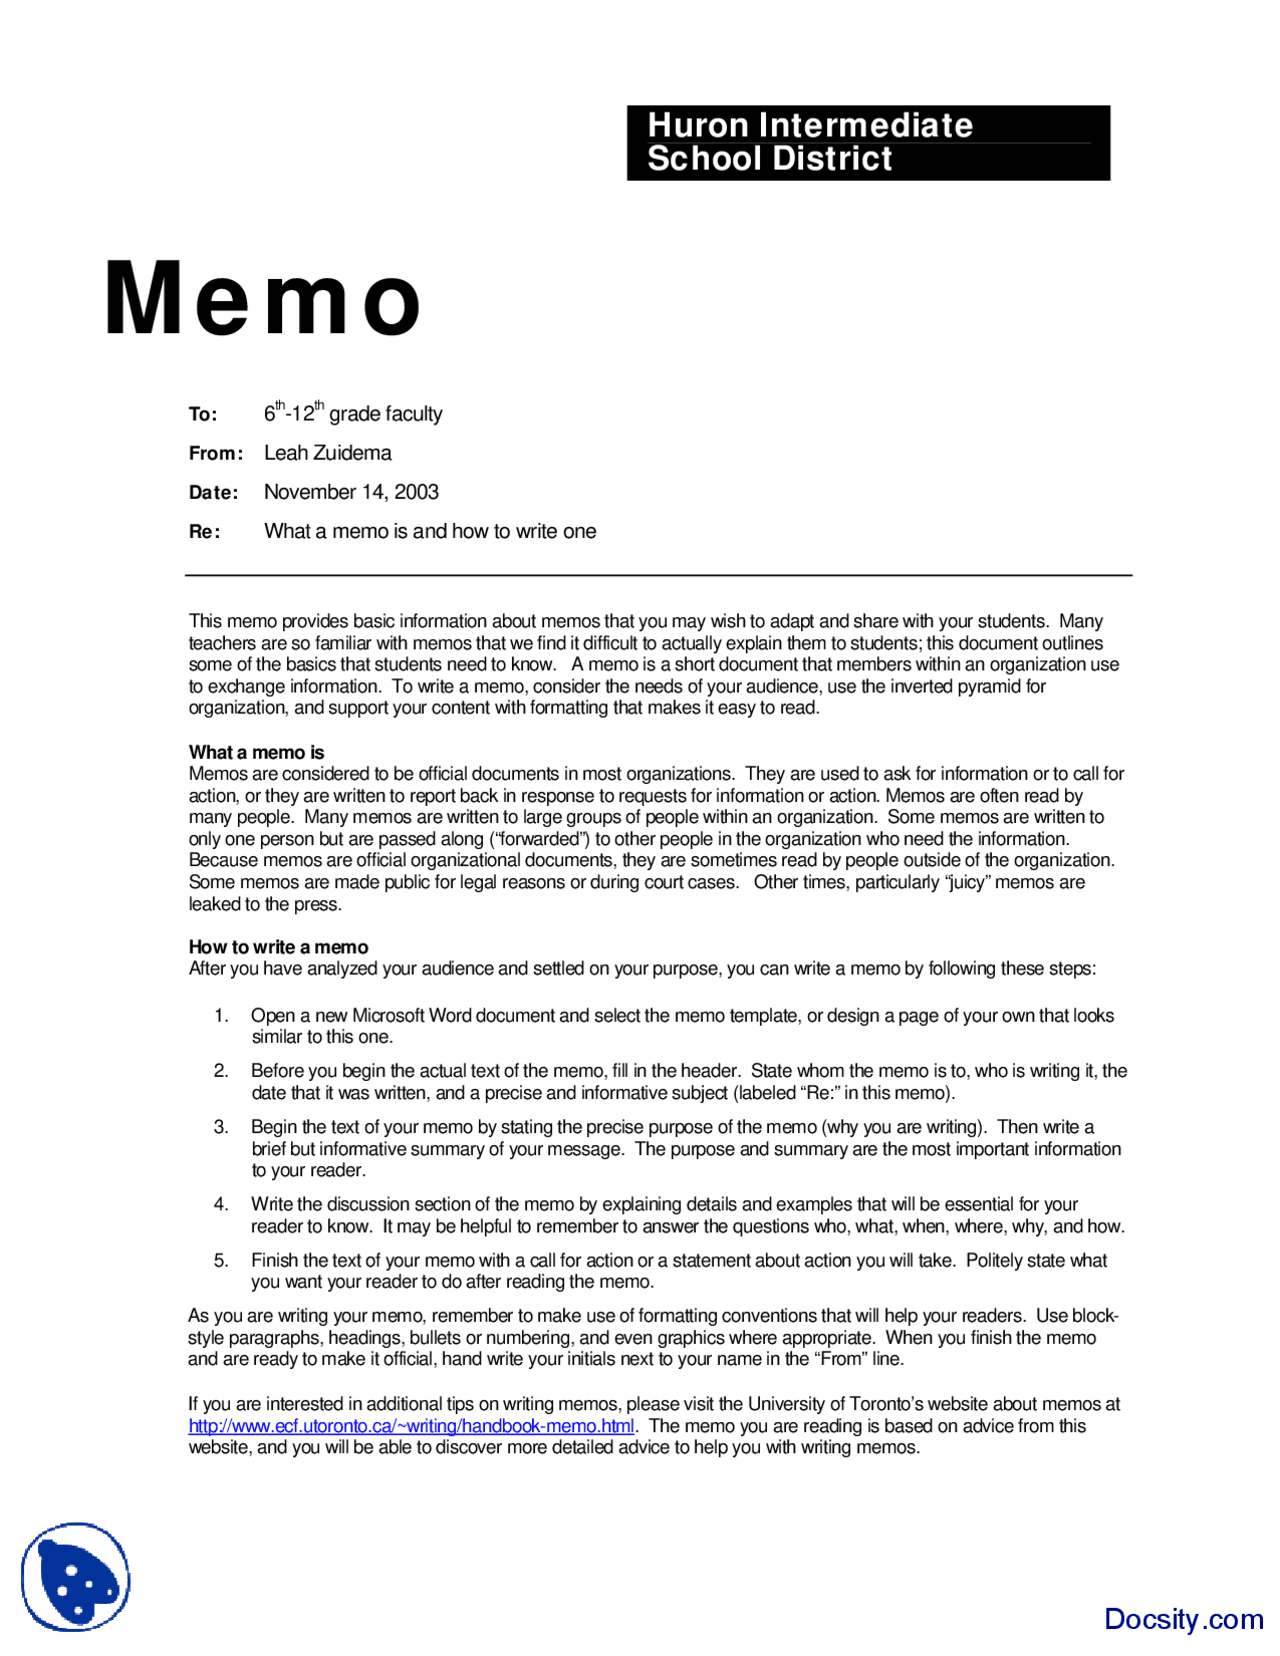 Memo Sample  Communication in Business Lecture Handout   Docsity